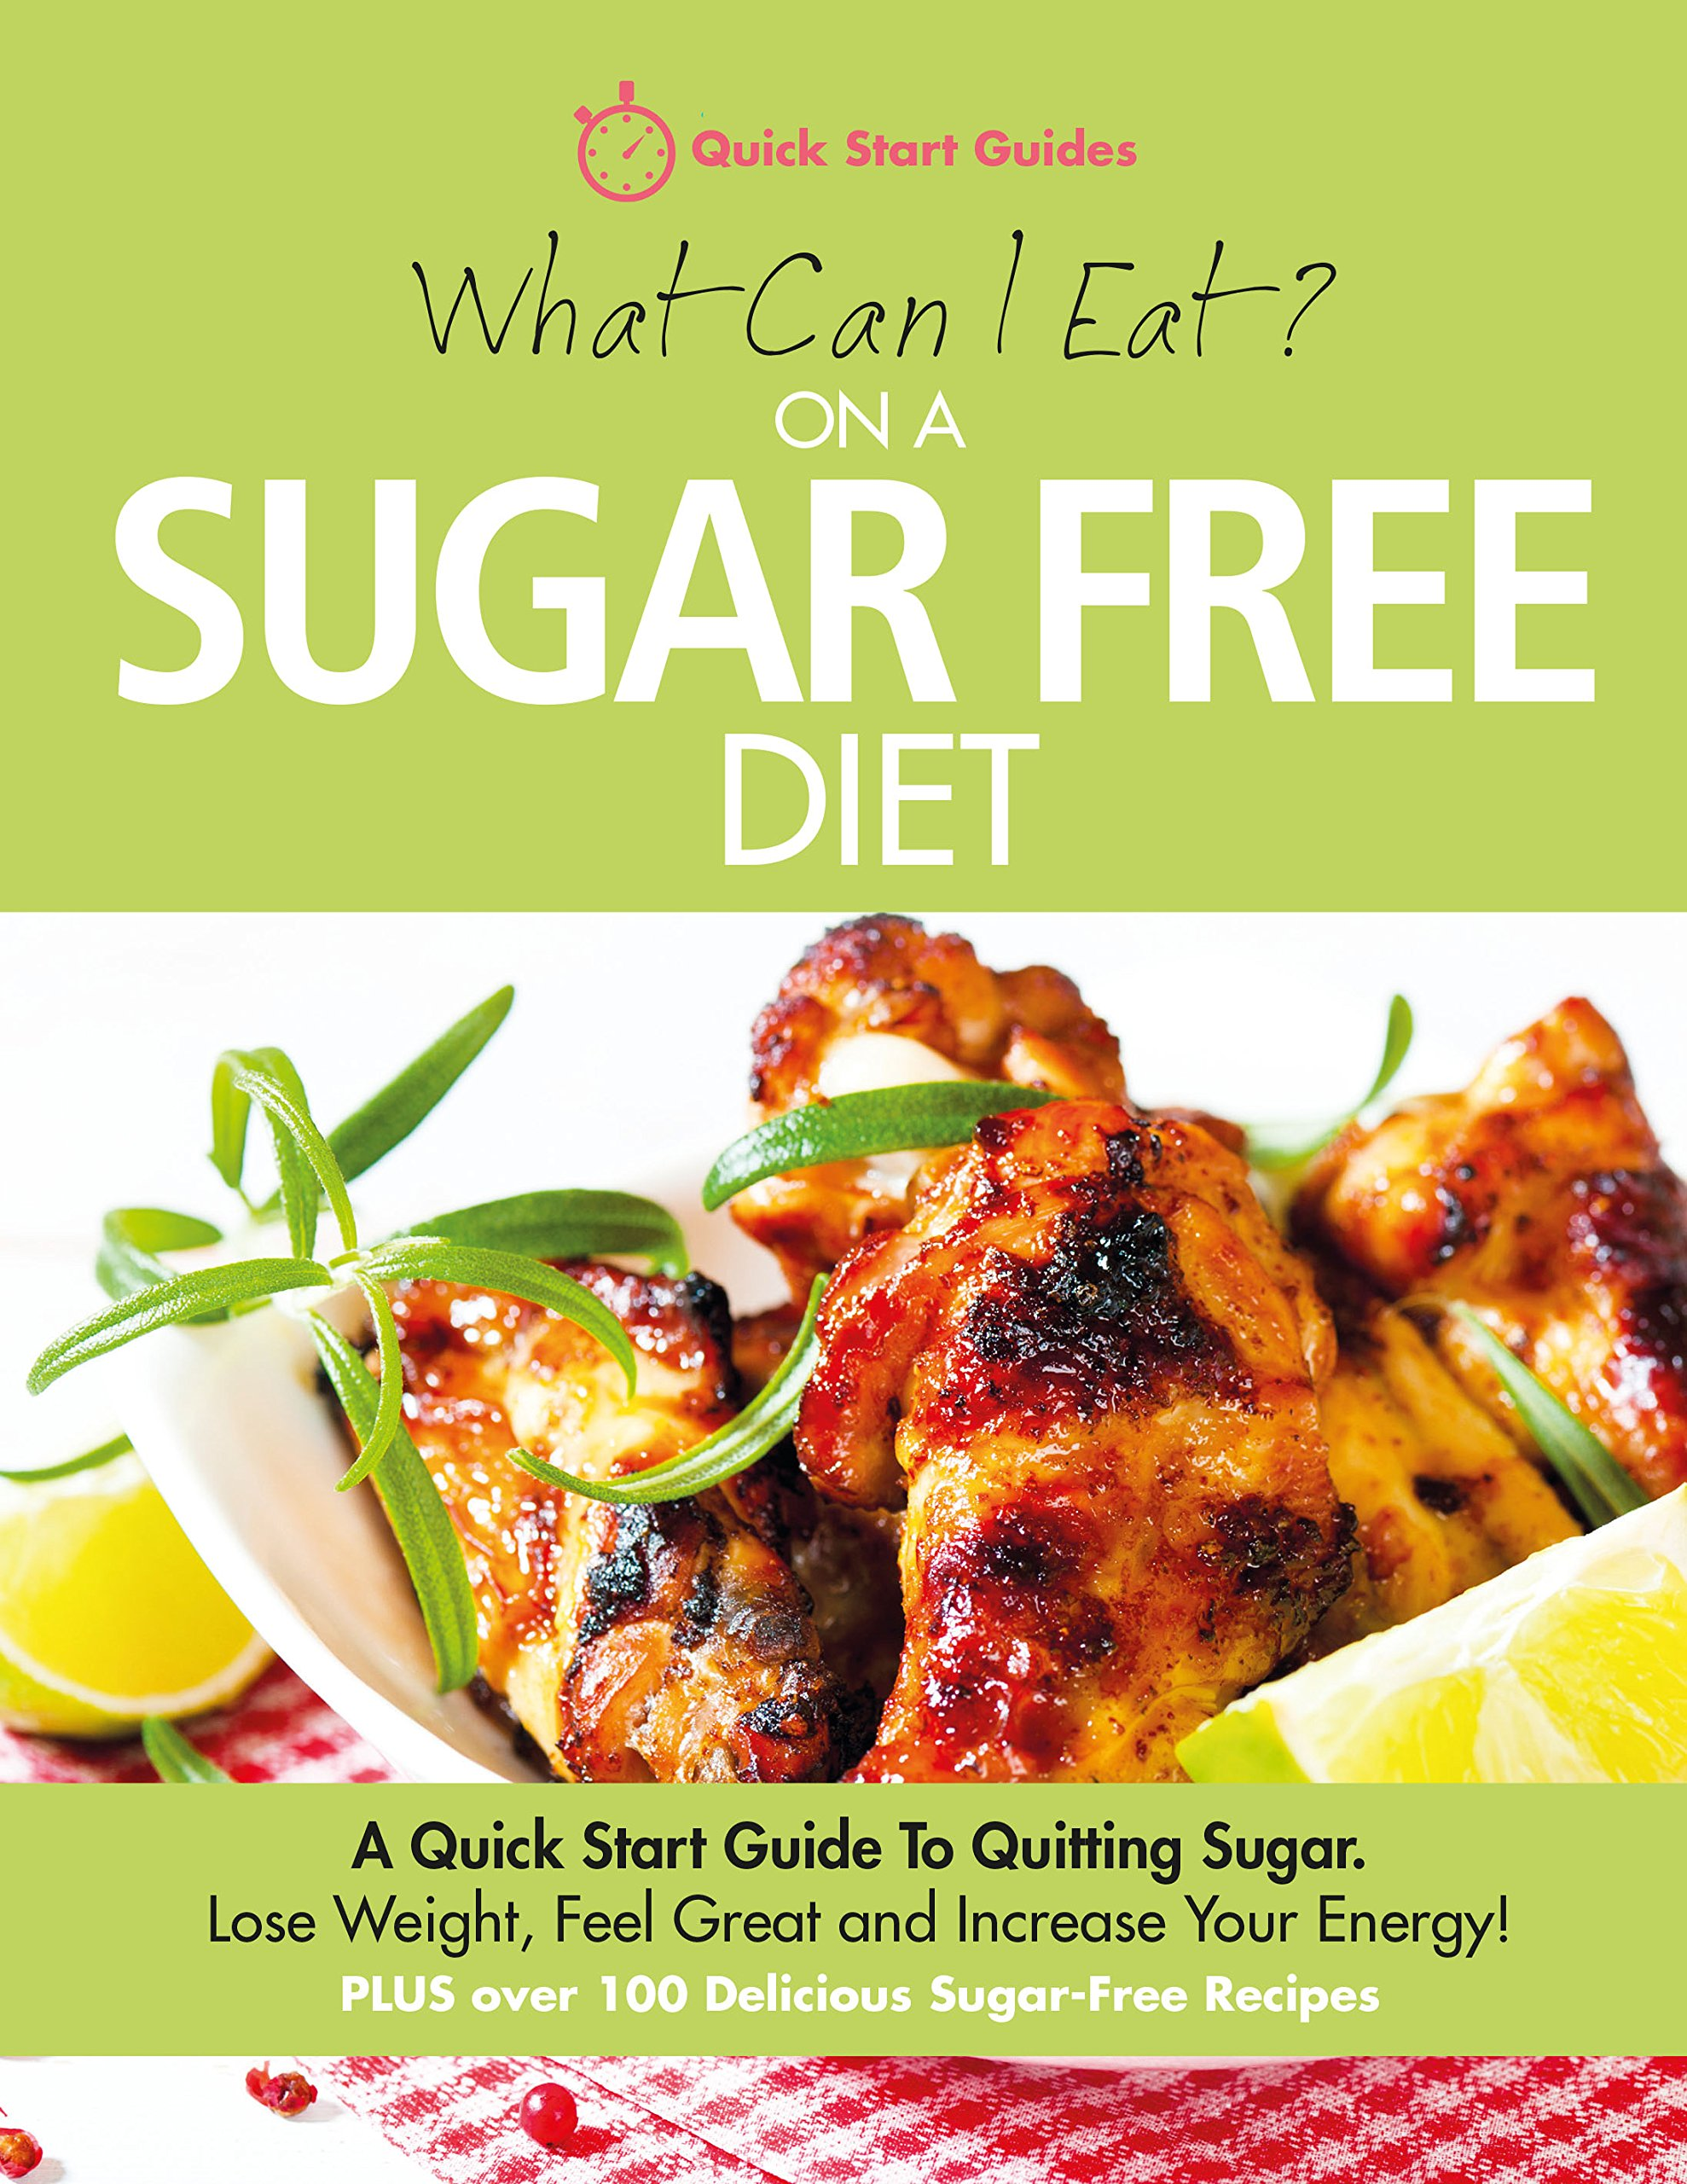 What Can I Eat On A Sugar Free Diet   A Quick Start Guide To Quitting Sugar. Lose Weight Feel Great And Increase Your Energy  PLUS Over 100 Delicious Sugar Free Recipes  English Edition